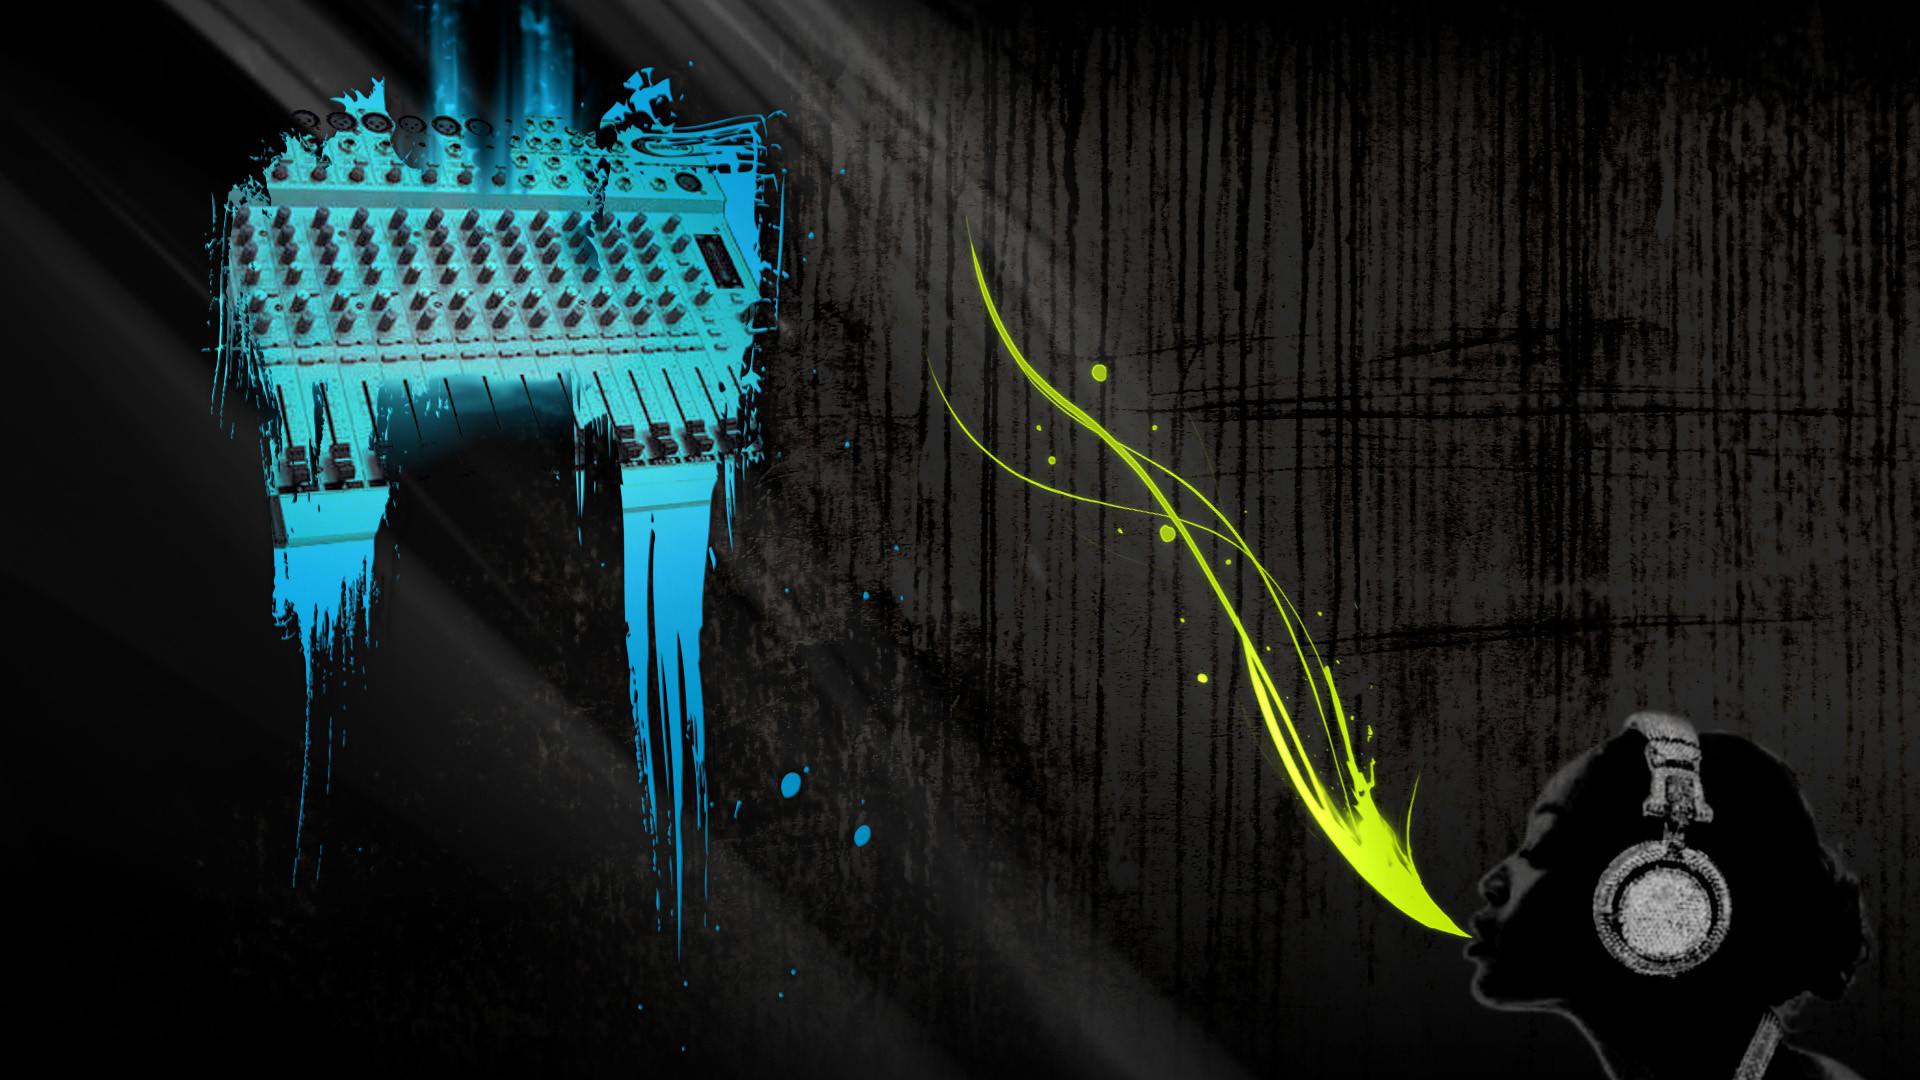 Abstract Music Wallpaper 64 Images Hd Wallpapers 1920x1080